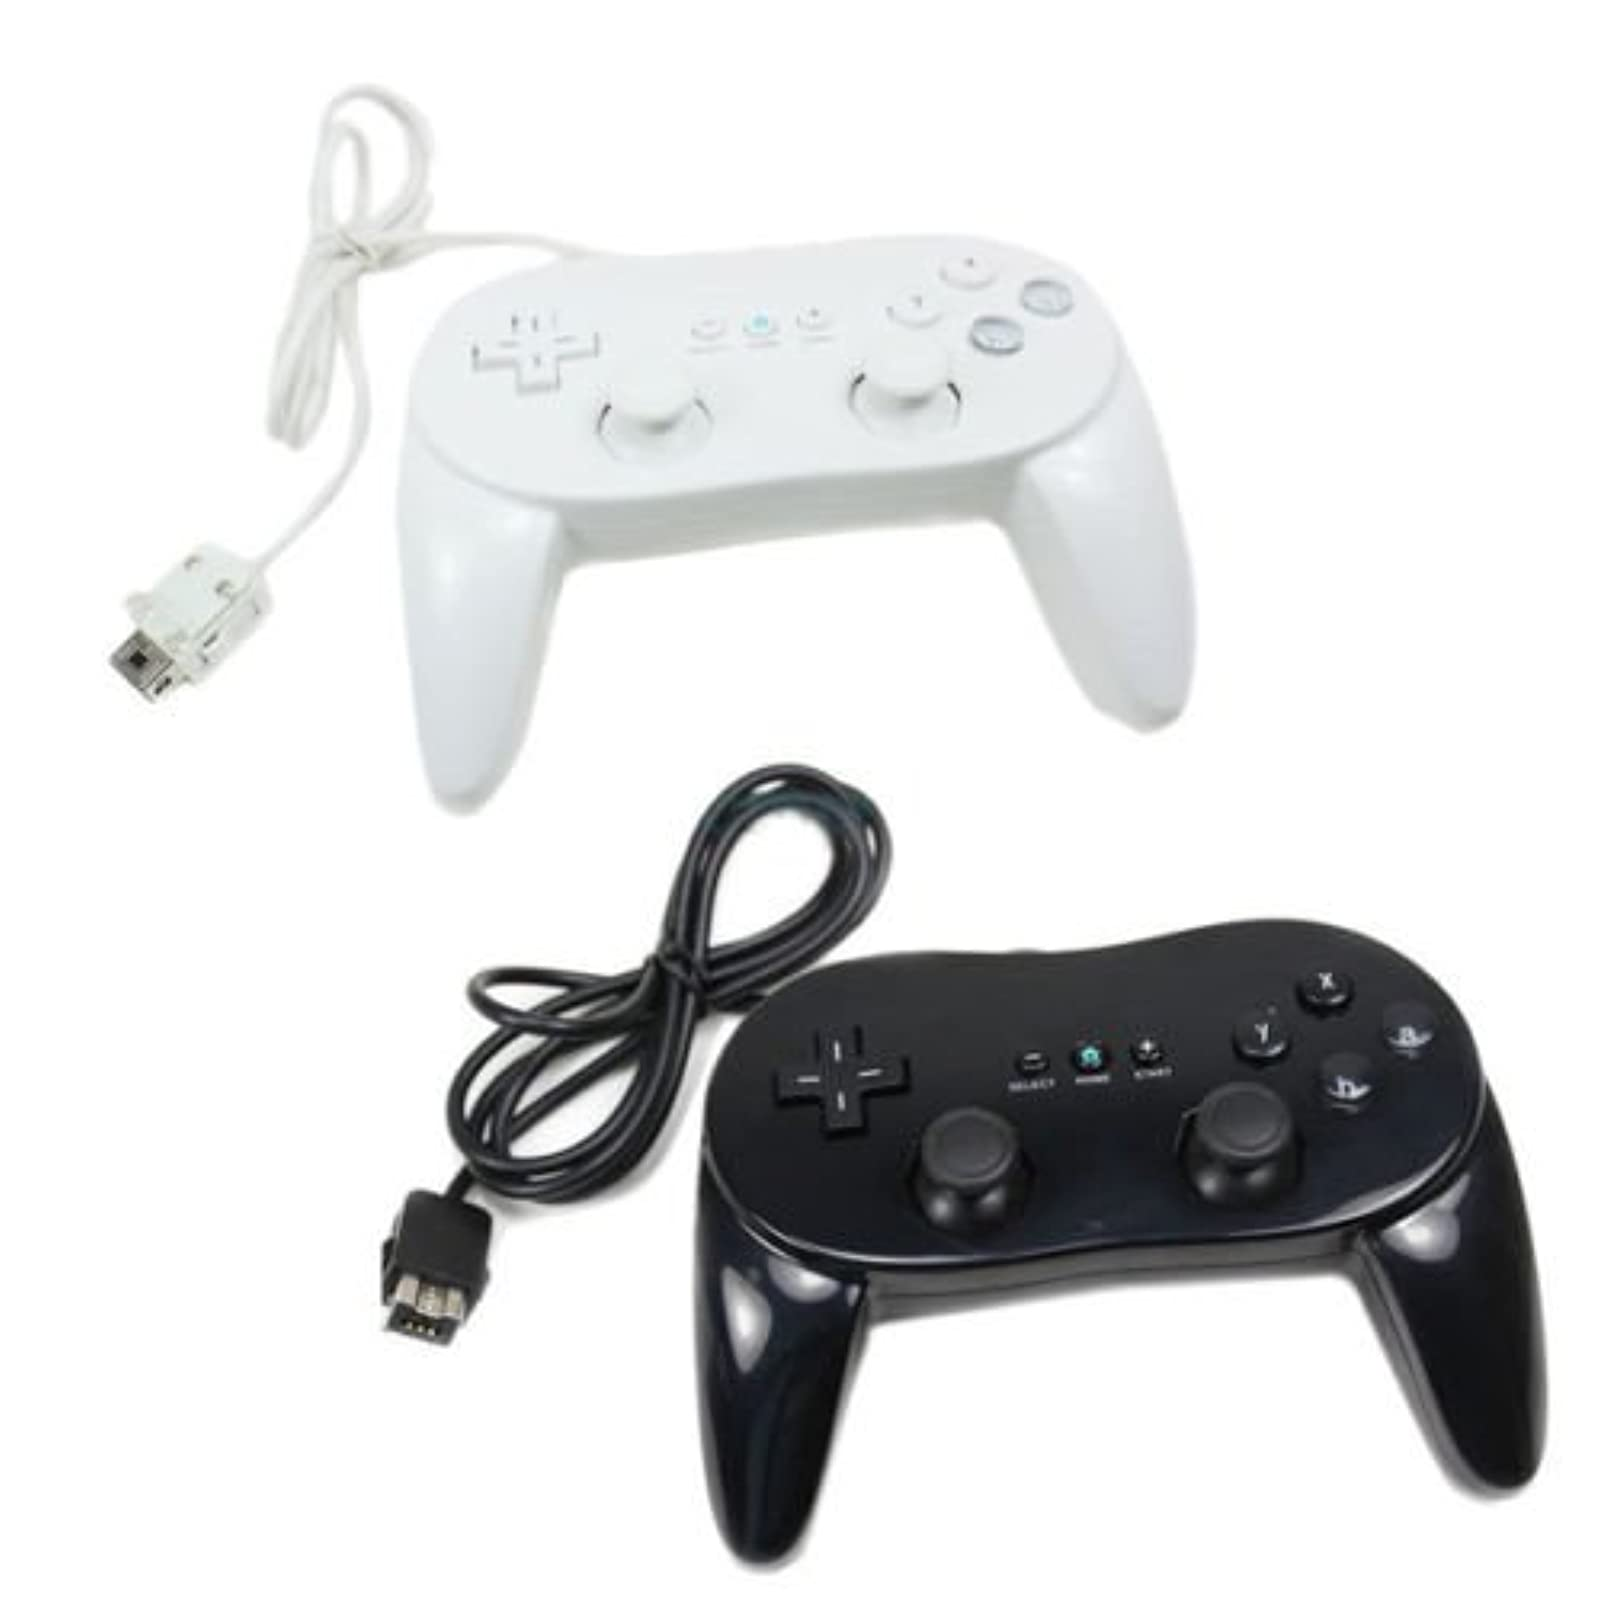 2 X New Classic Pro Remote Controller For Black And White US Ship For Wii